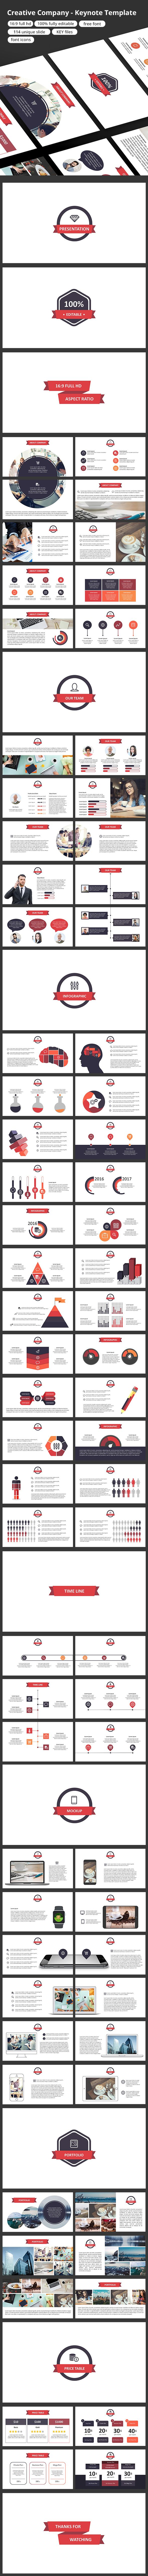 Creative Company Keynote Template #keynote #key #infographic #clean • Download ➝ https://graphicriver.net/item/creative-company-keynote-template/18710662?ref=pxcr